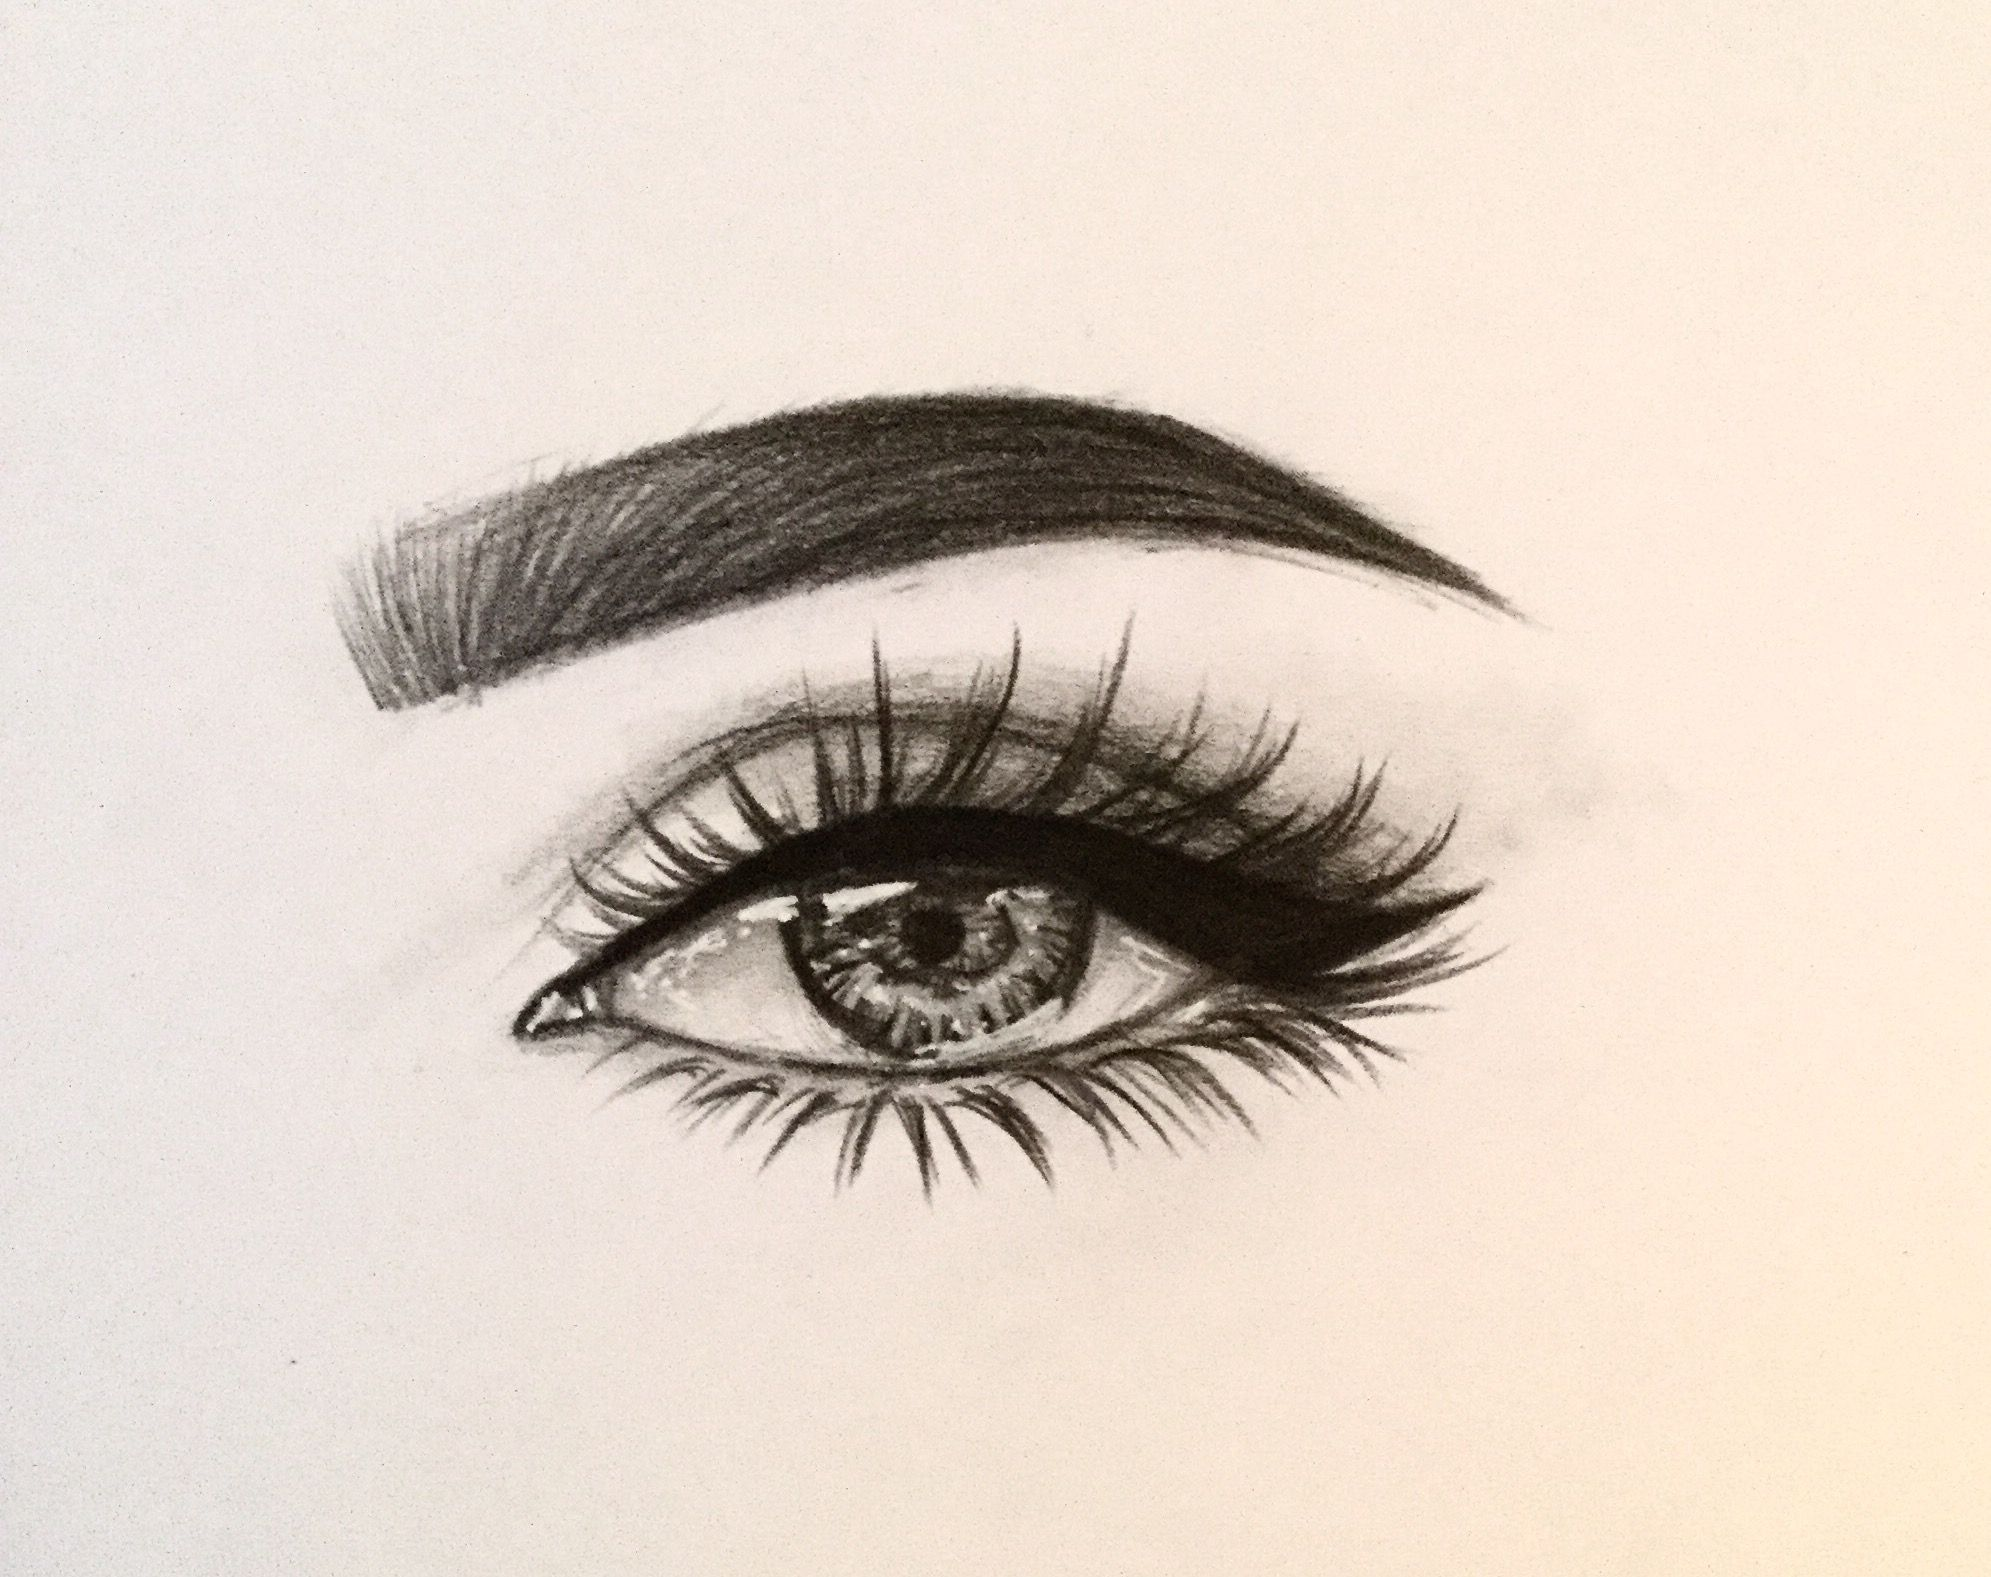 Croqui eye EyeLashesDrawing